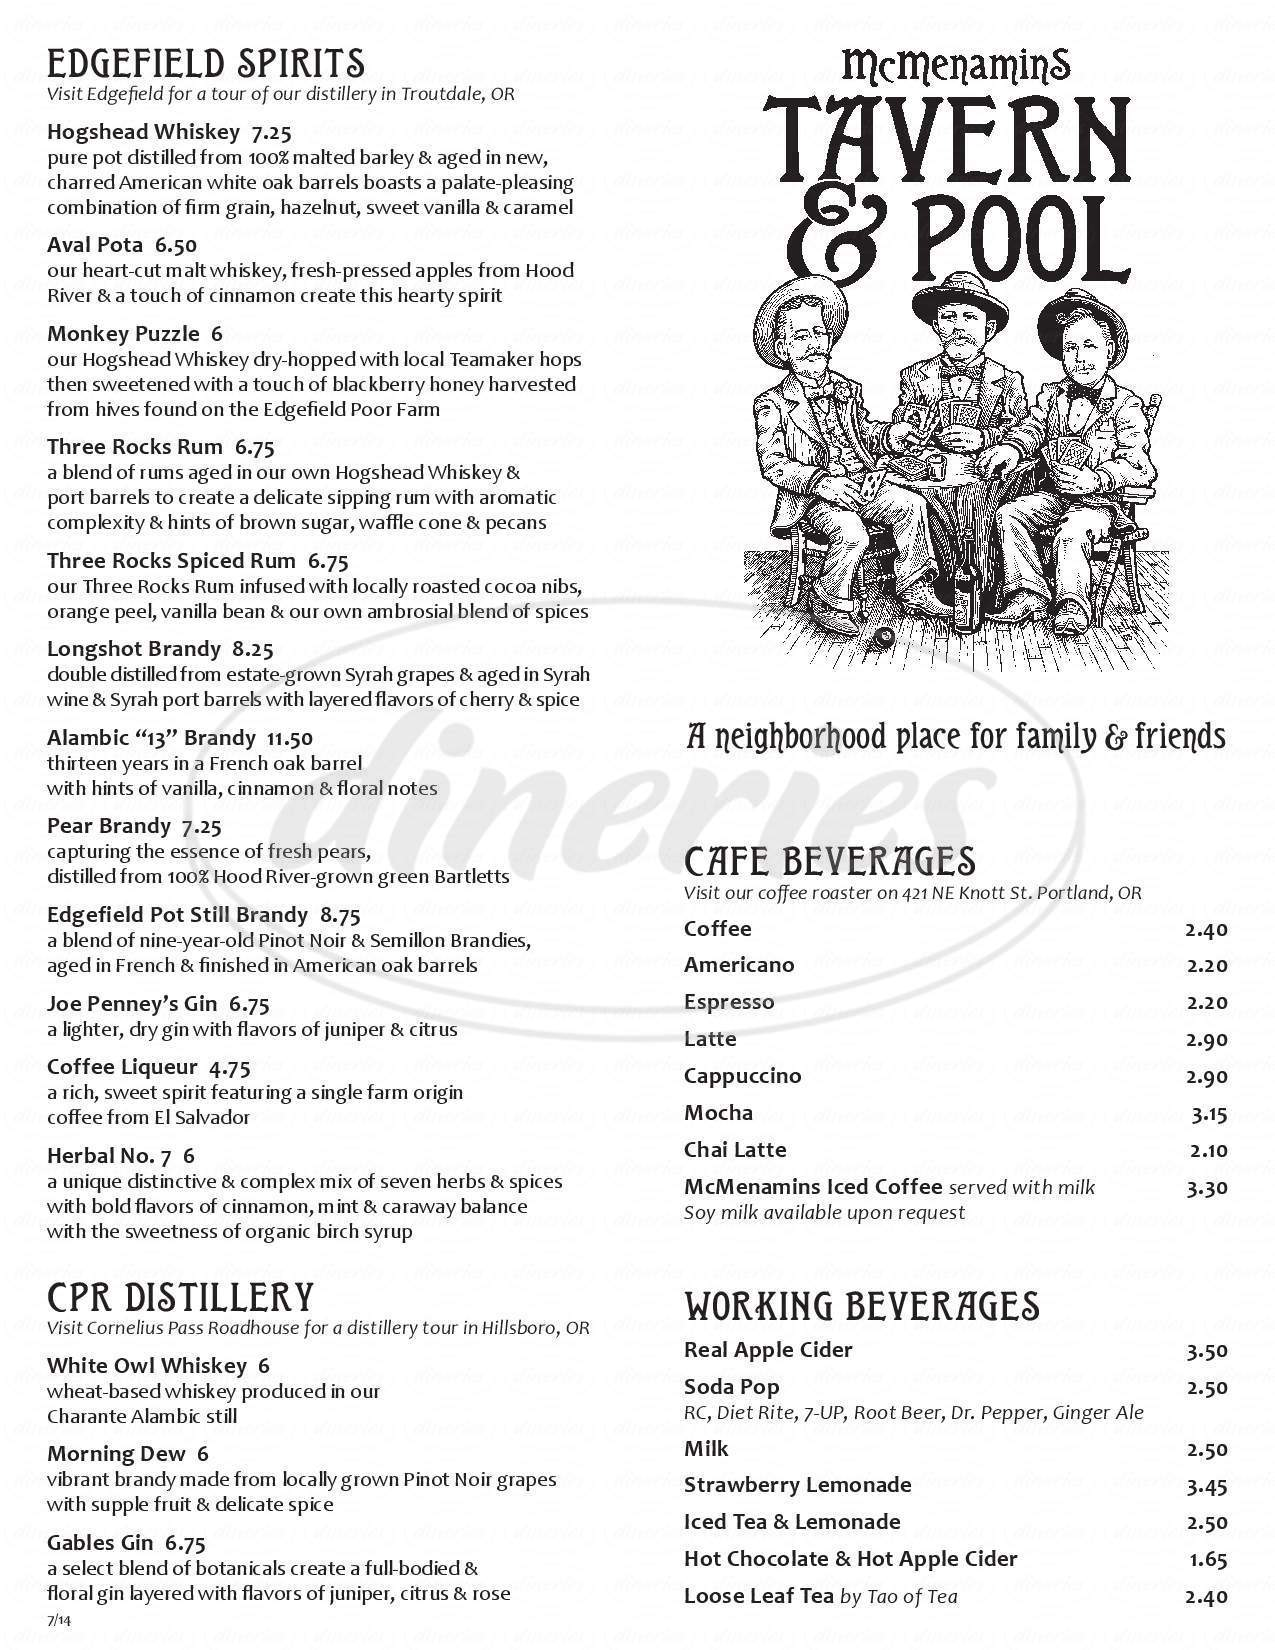 menu for McMenamins Tavern & Pool